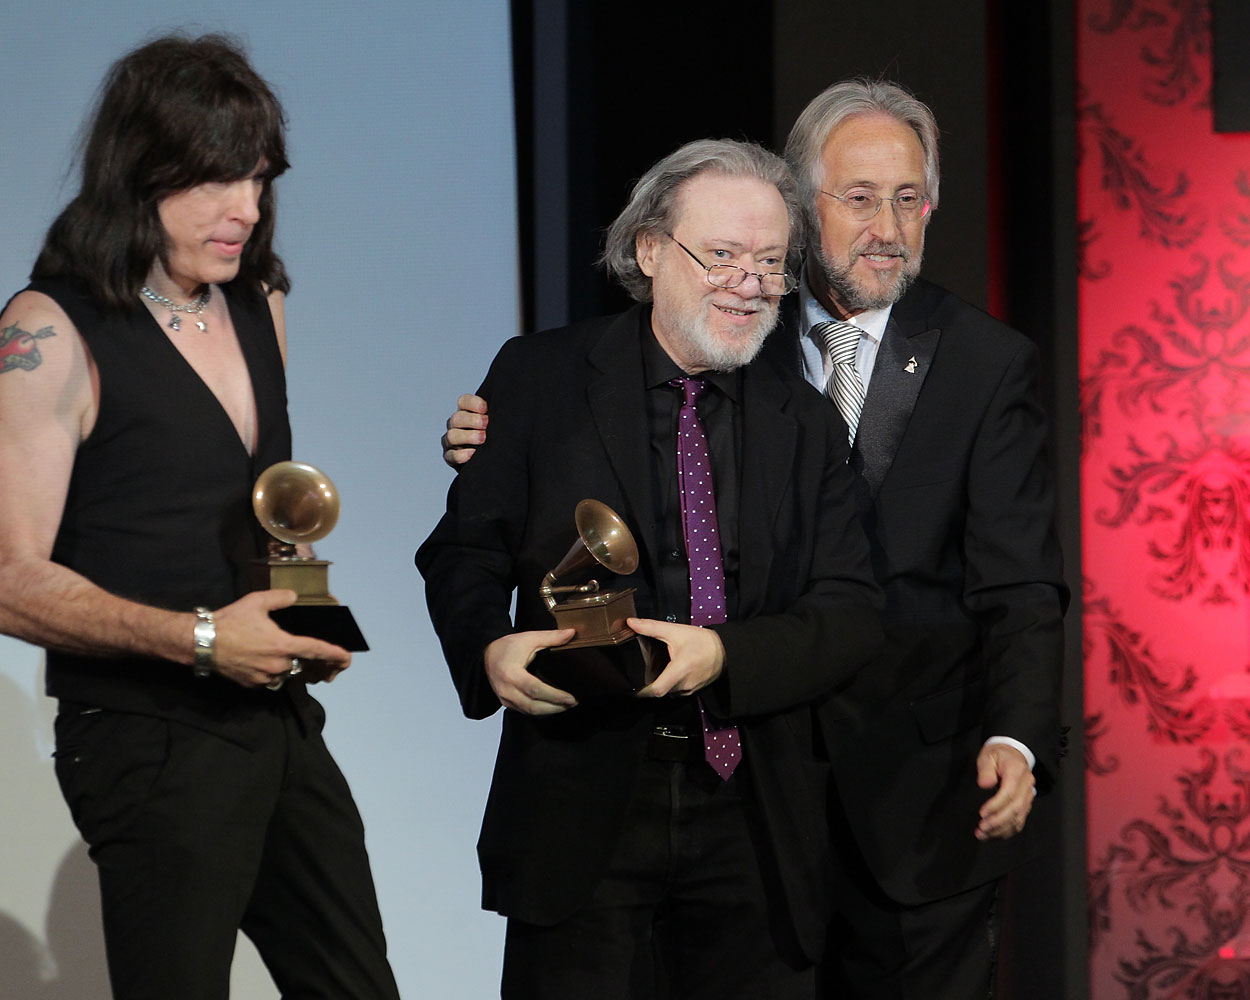 From left to right, Marky Ramone, Tommy Ramone and Neil Portnow attend the Recording Academy Special Merit Awards Ceremony at The Wilshire Ebell Theatre on Feb. 12, 2011 in Los Angeles.